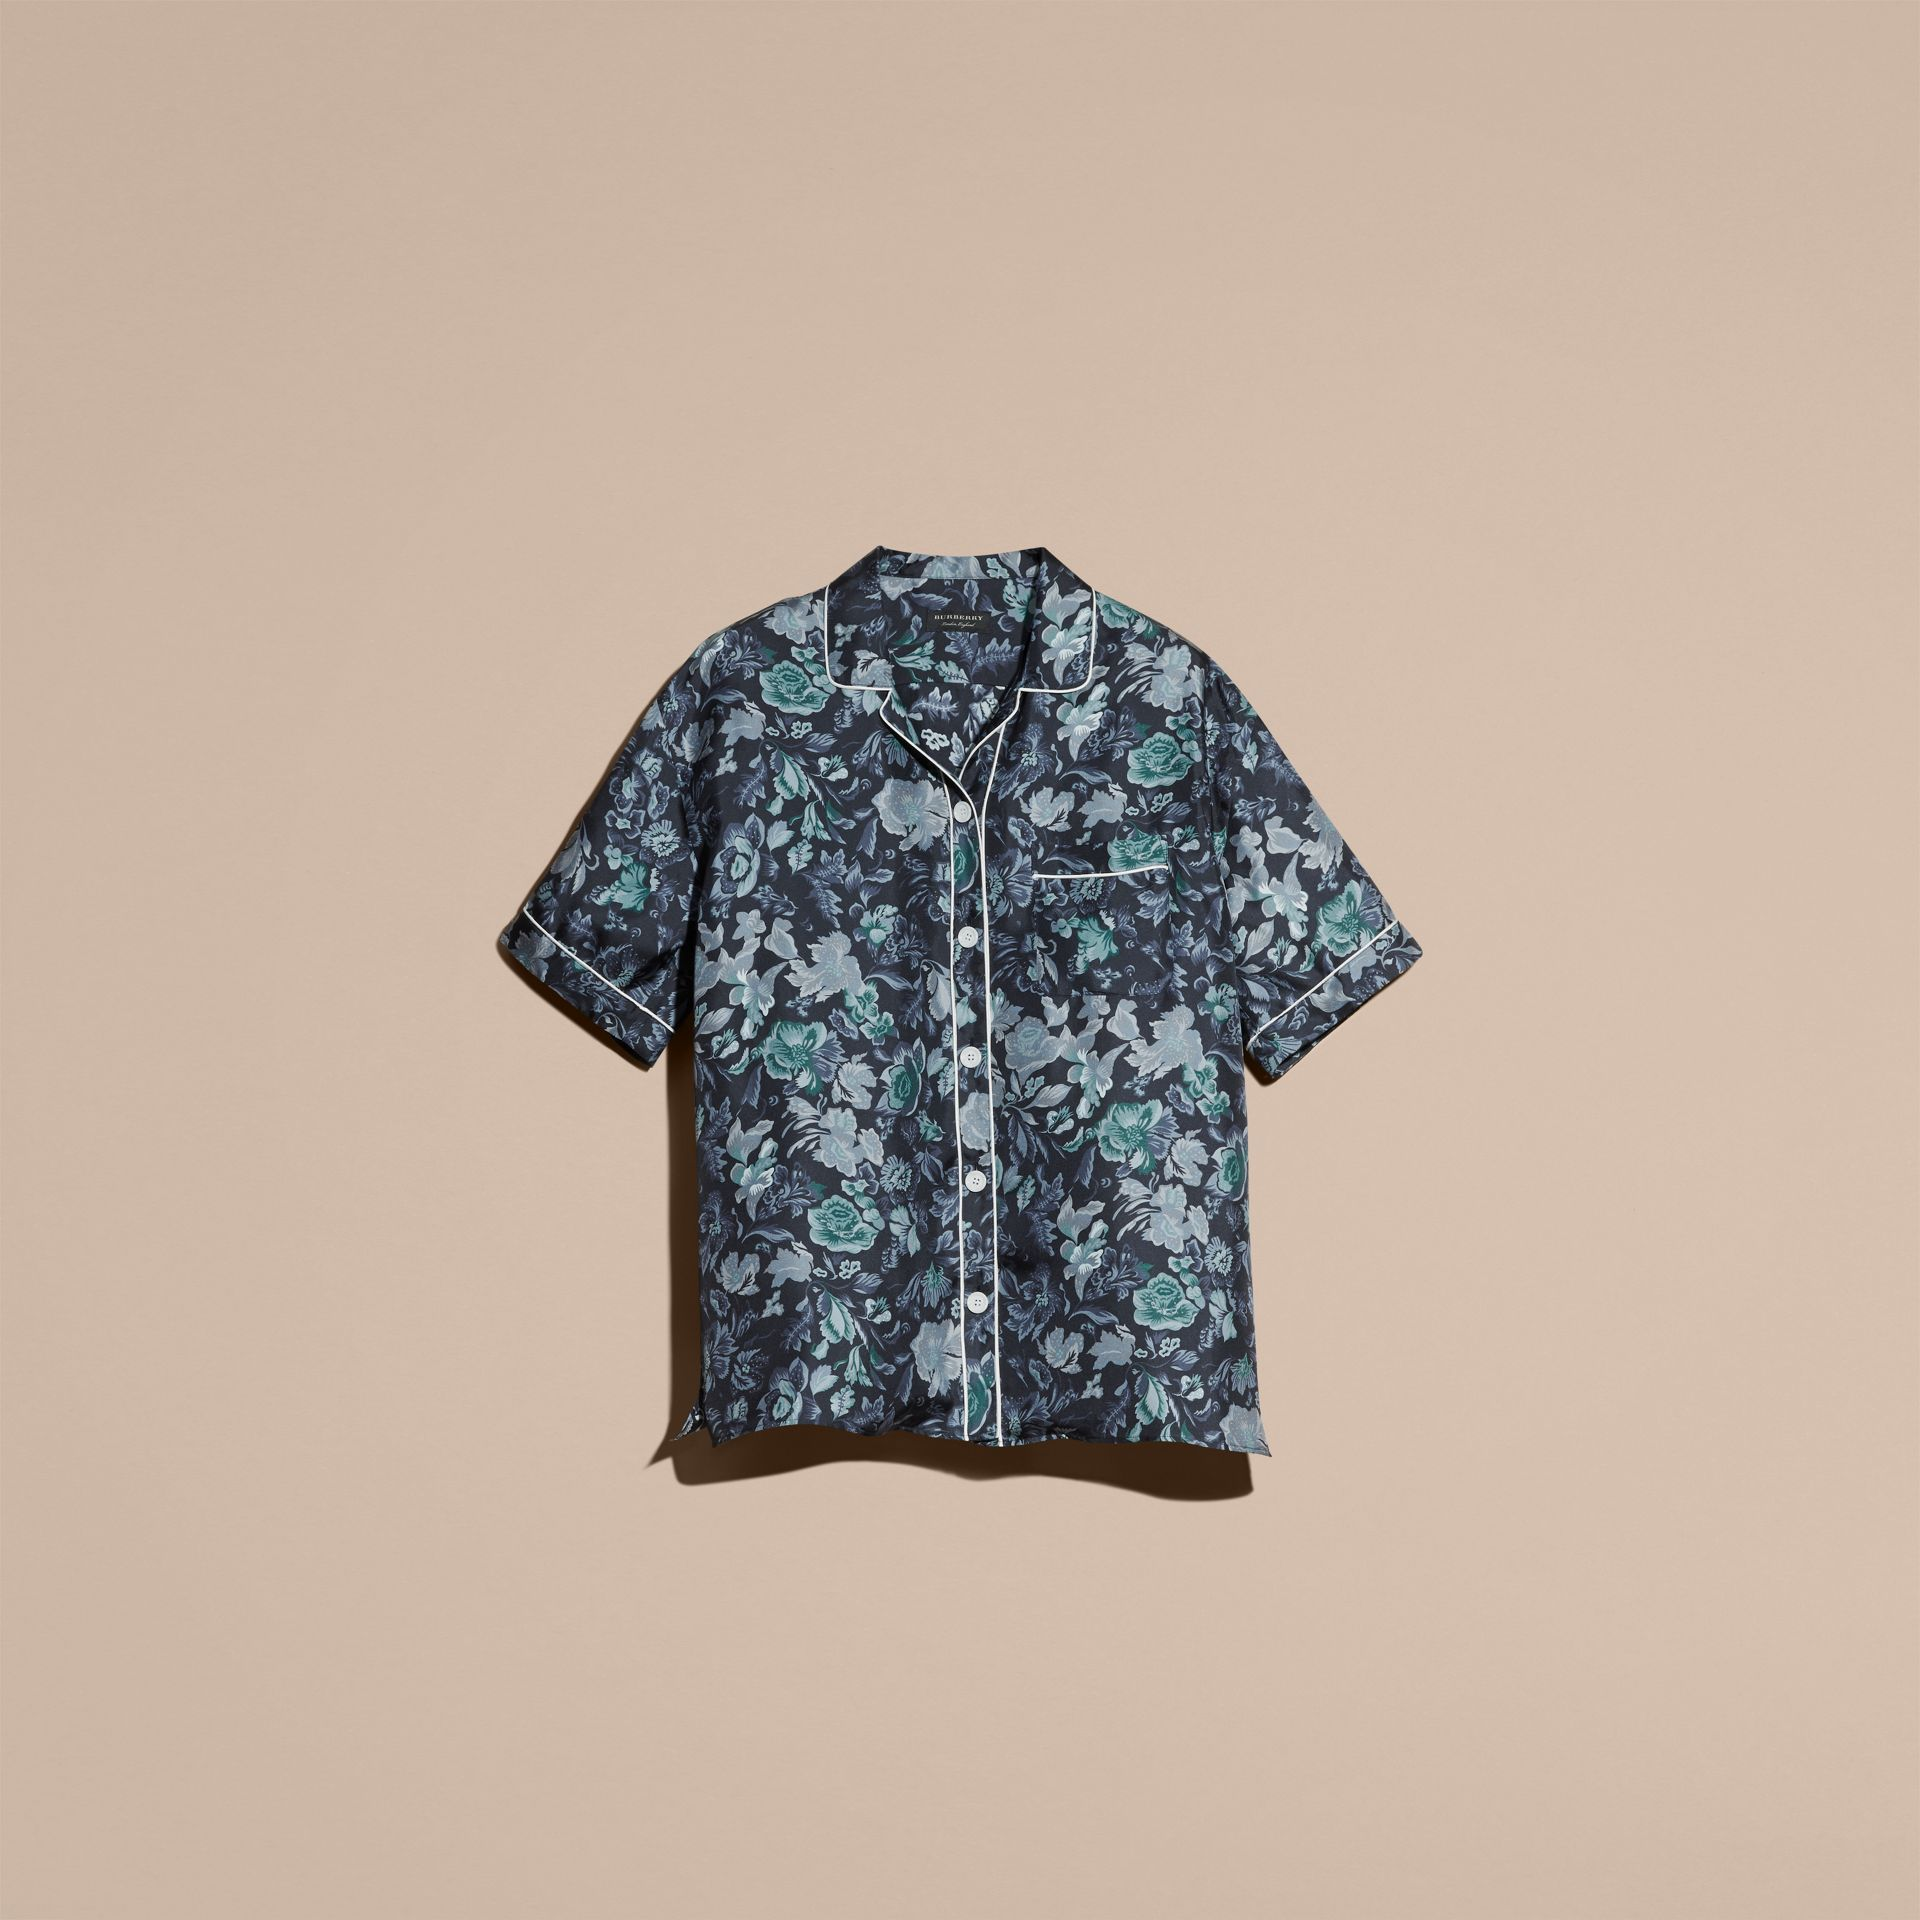 Navy Short-sleeved Floral Print Silk Pyjama-style Shirt Navy - gallery image 4